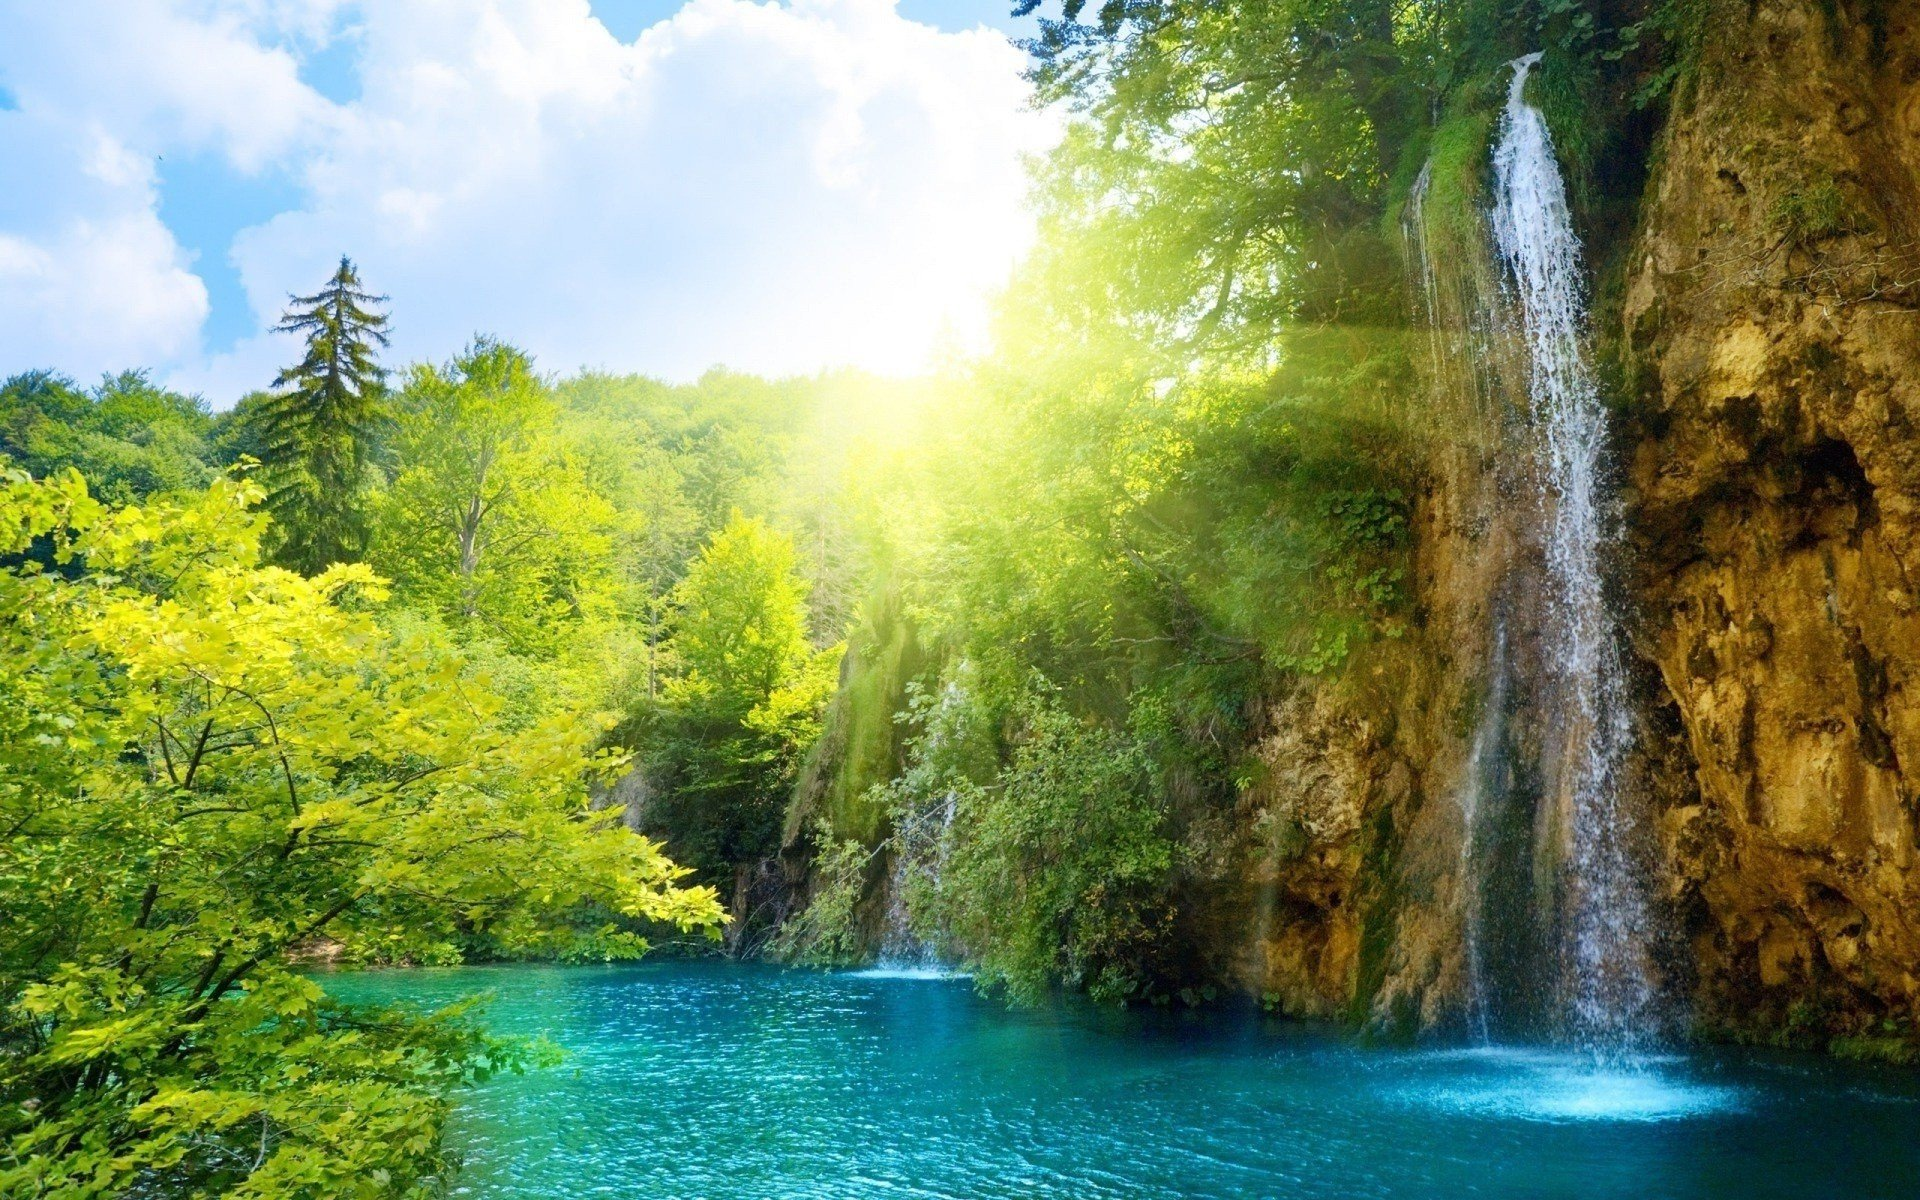 bright hd wallpapers 1080p widescreen - photo #24